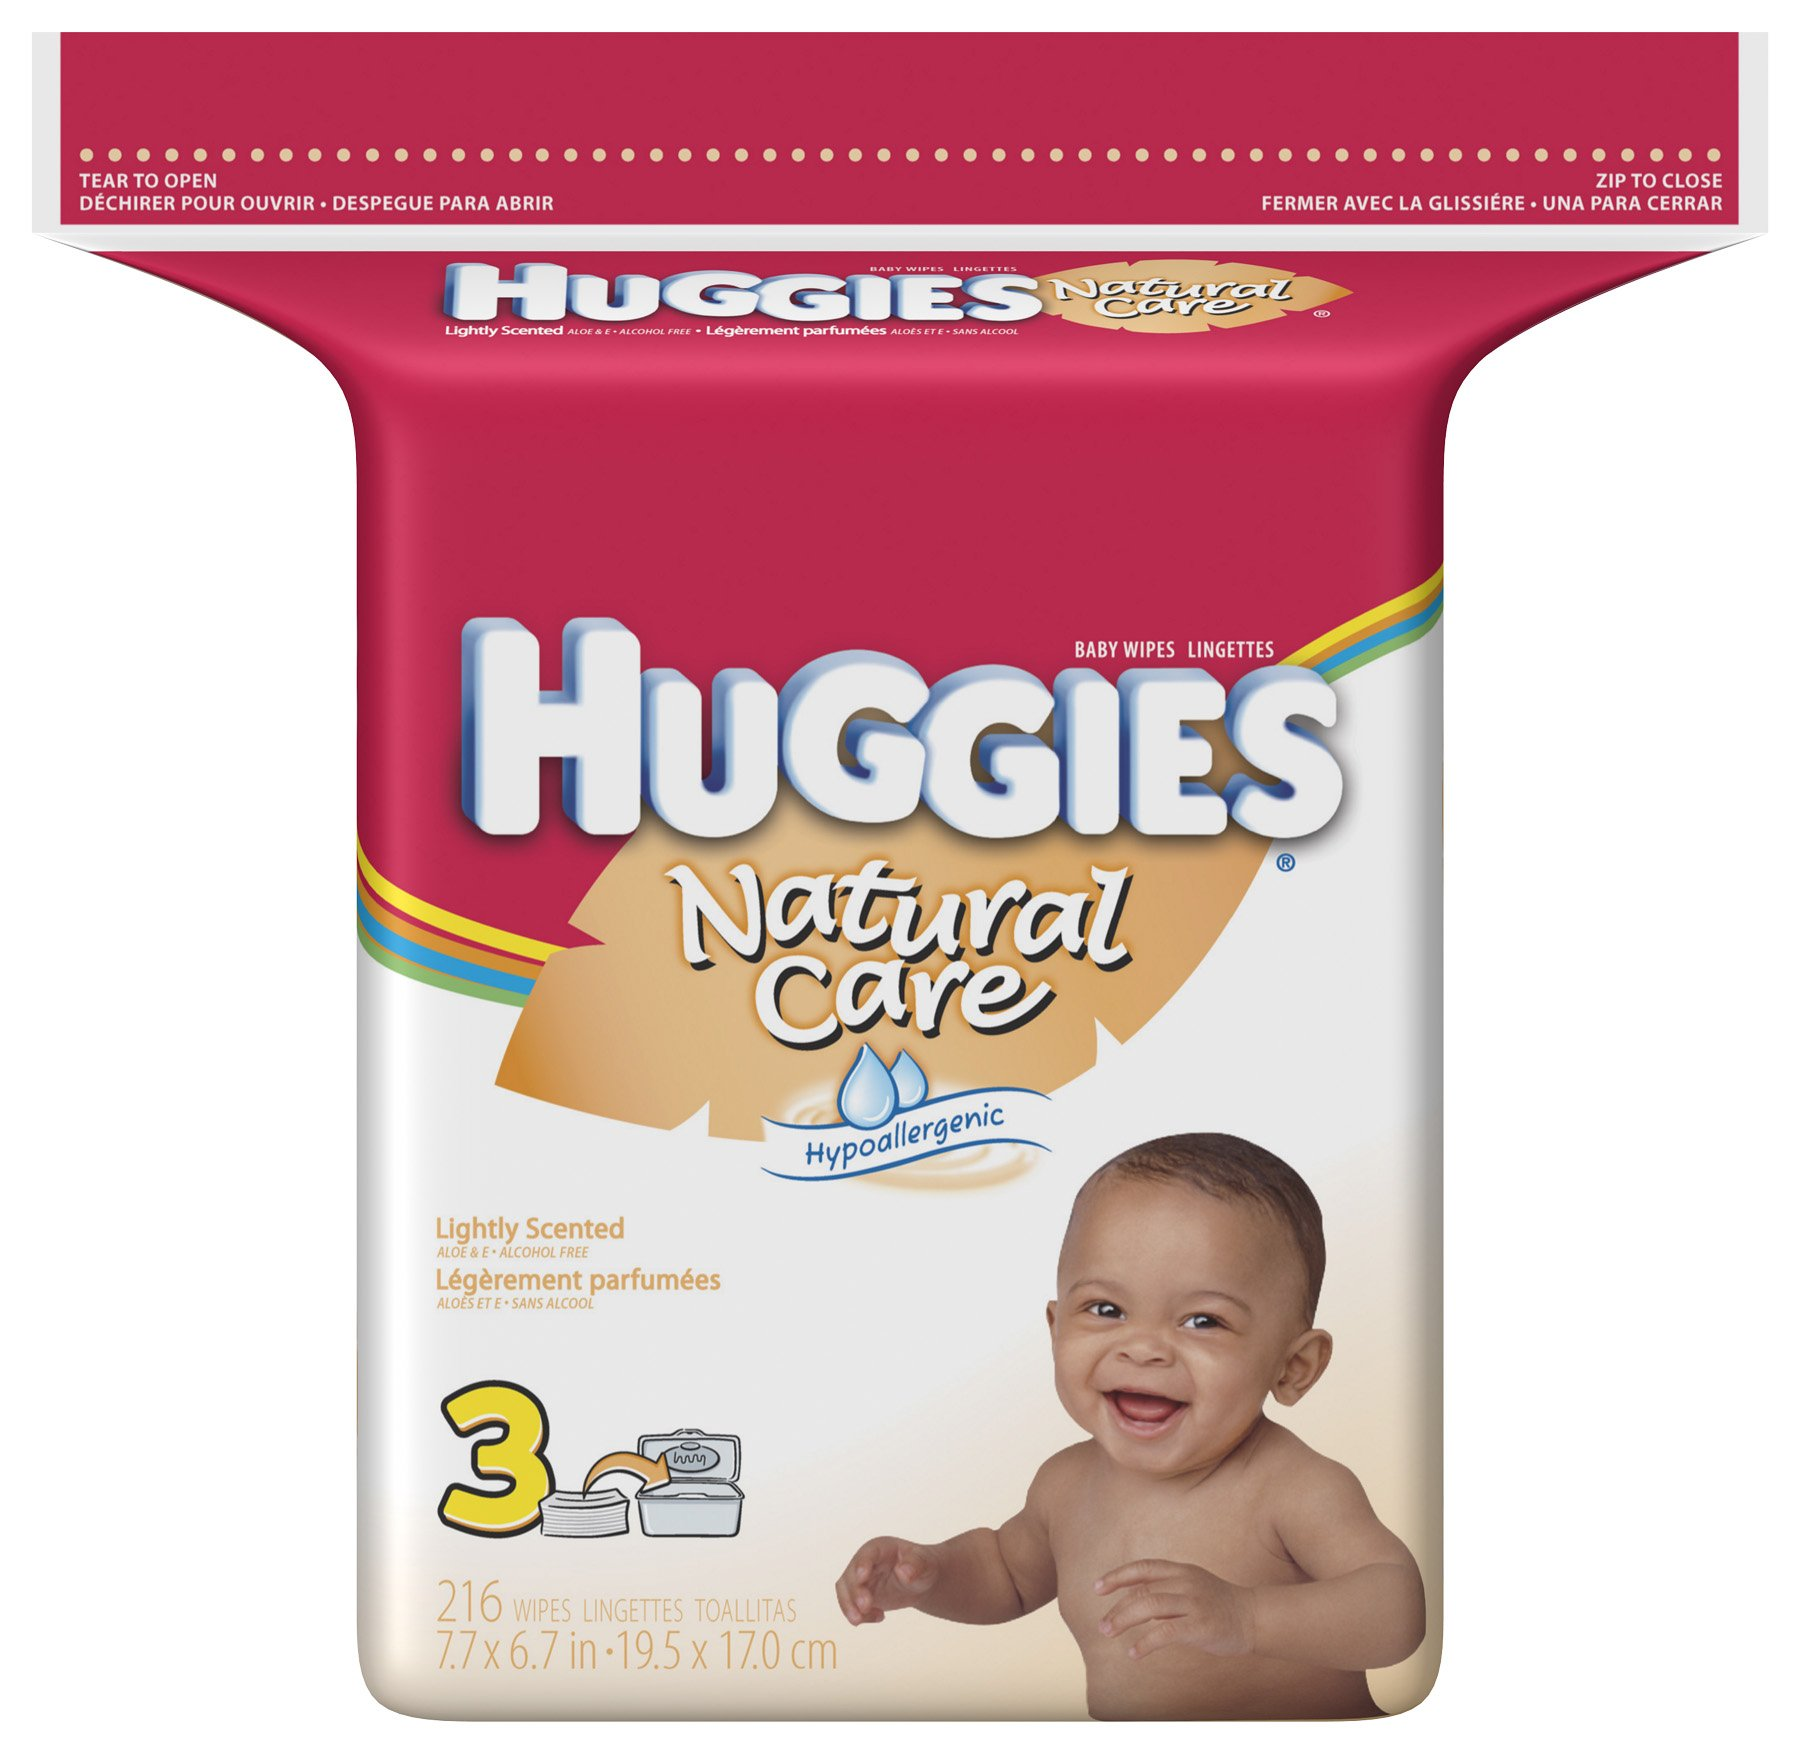 Huggies Natural Care Baby Wipes, Scented, Refill, 216-Count Pack (Pack of 3)=648 Wipes